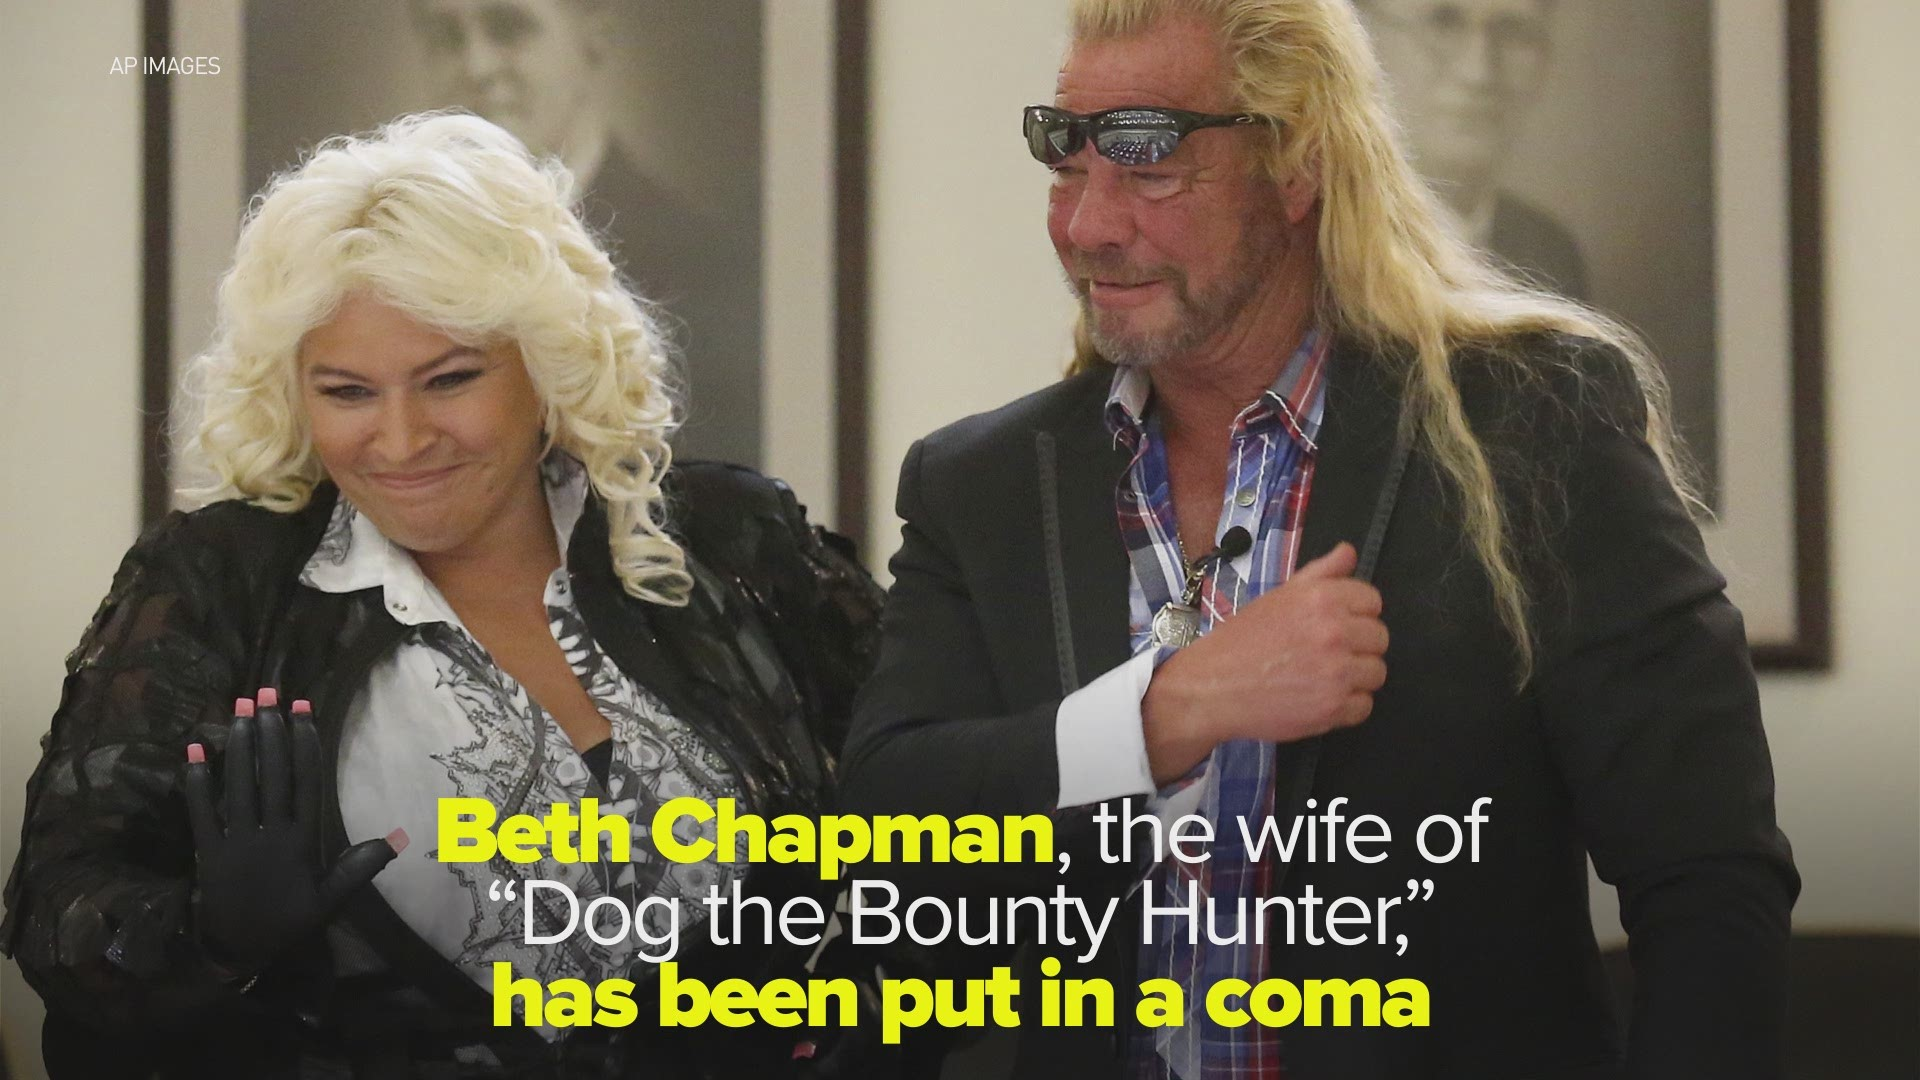 Beth Chapman Wife Of Dog The Bounty Hunter Placed In A Coma